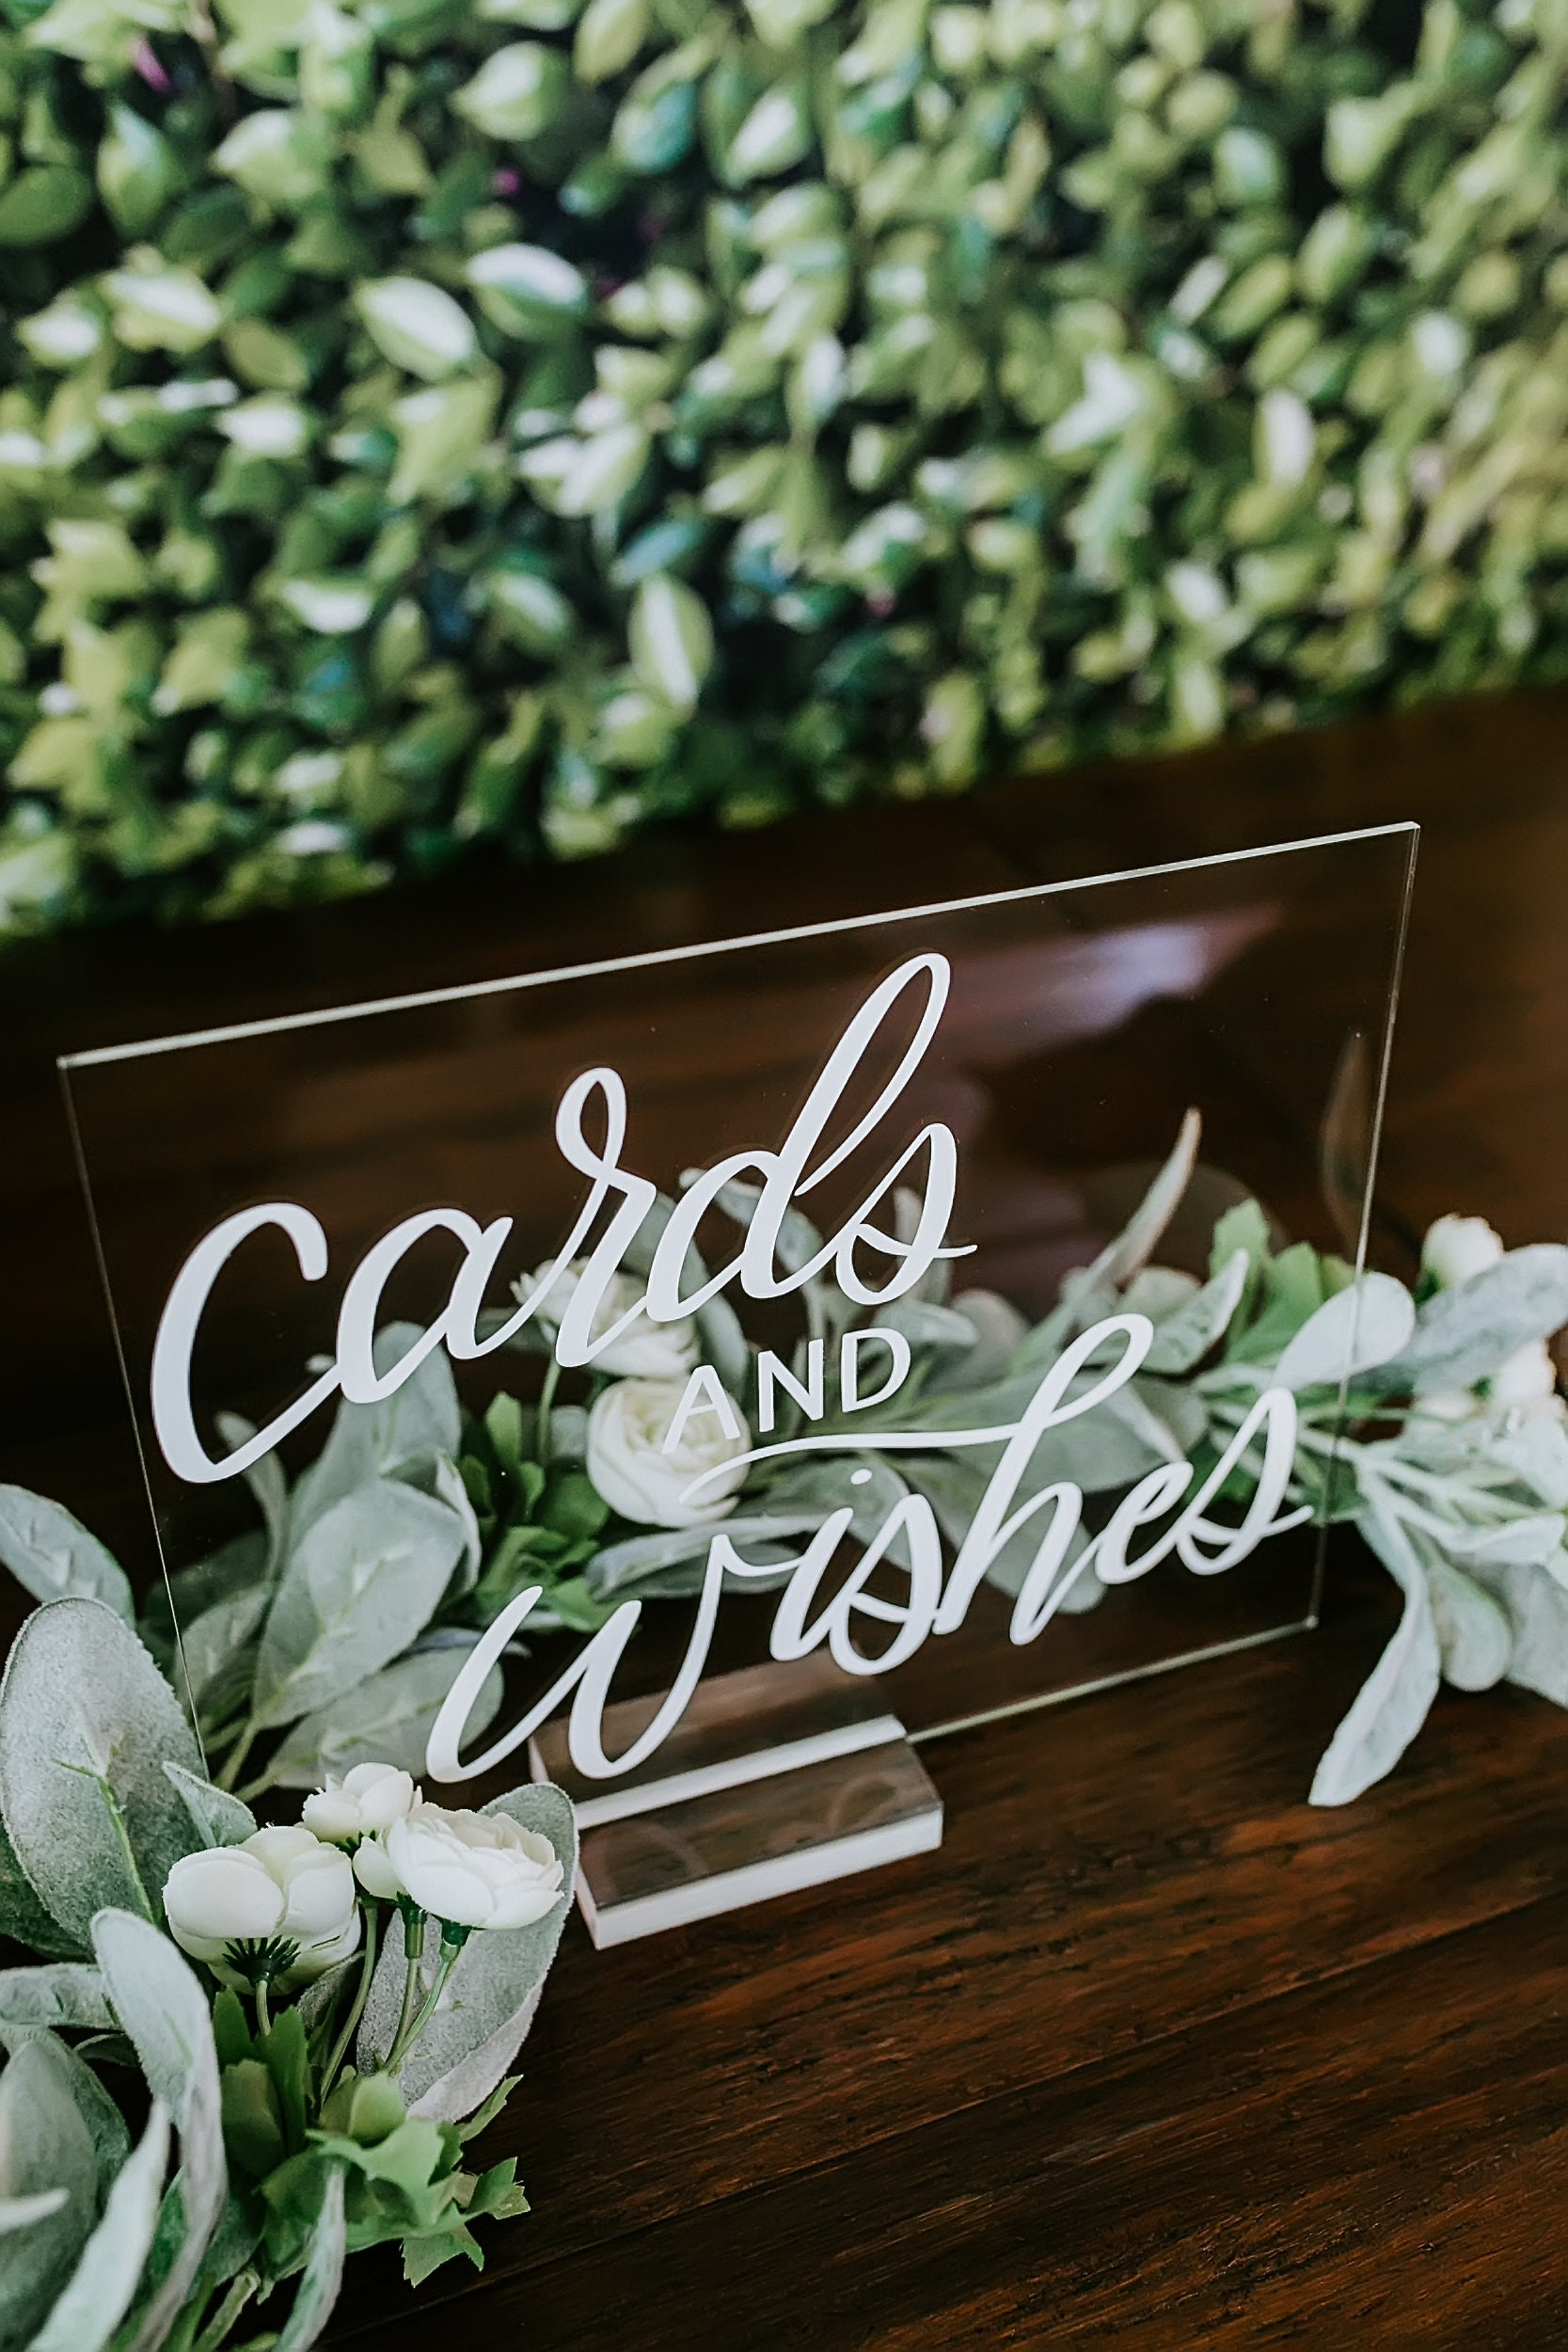 Cards And Wishes Modern Minimalist Clear Glass Look Acrylic Wedding Sign,  8x10 Gifts and Cards Lucite Perspex Table Sign, HL